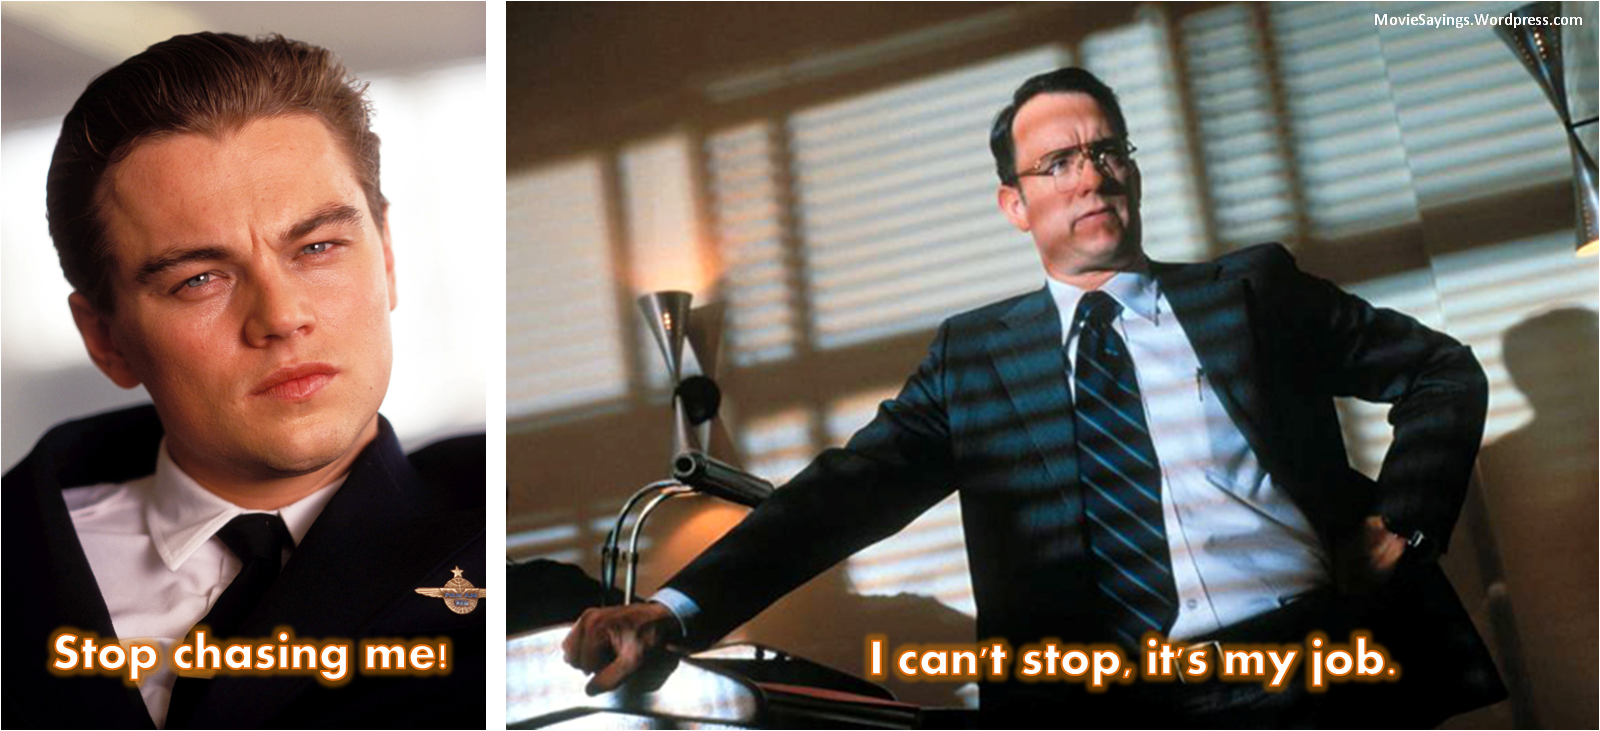 moviesayings.wordpress.com||https://moviesayings.wordpress.com/tag/catch-me-if-you-can/